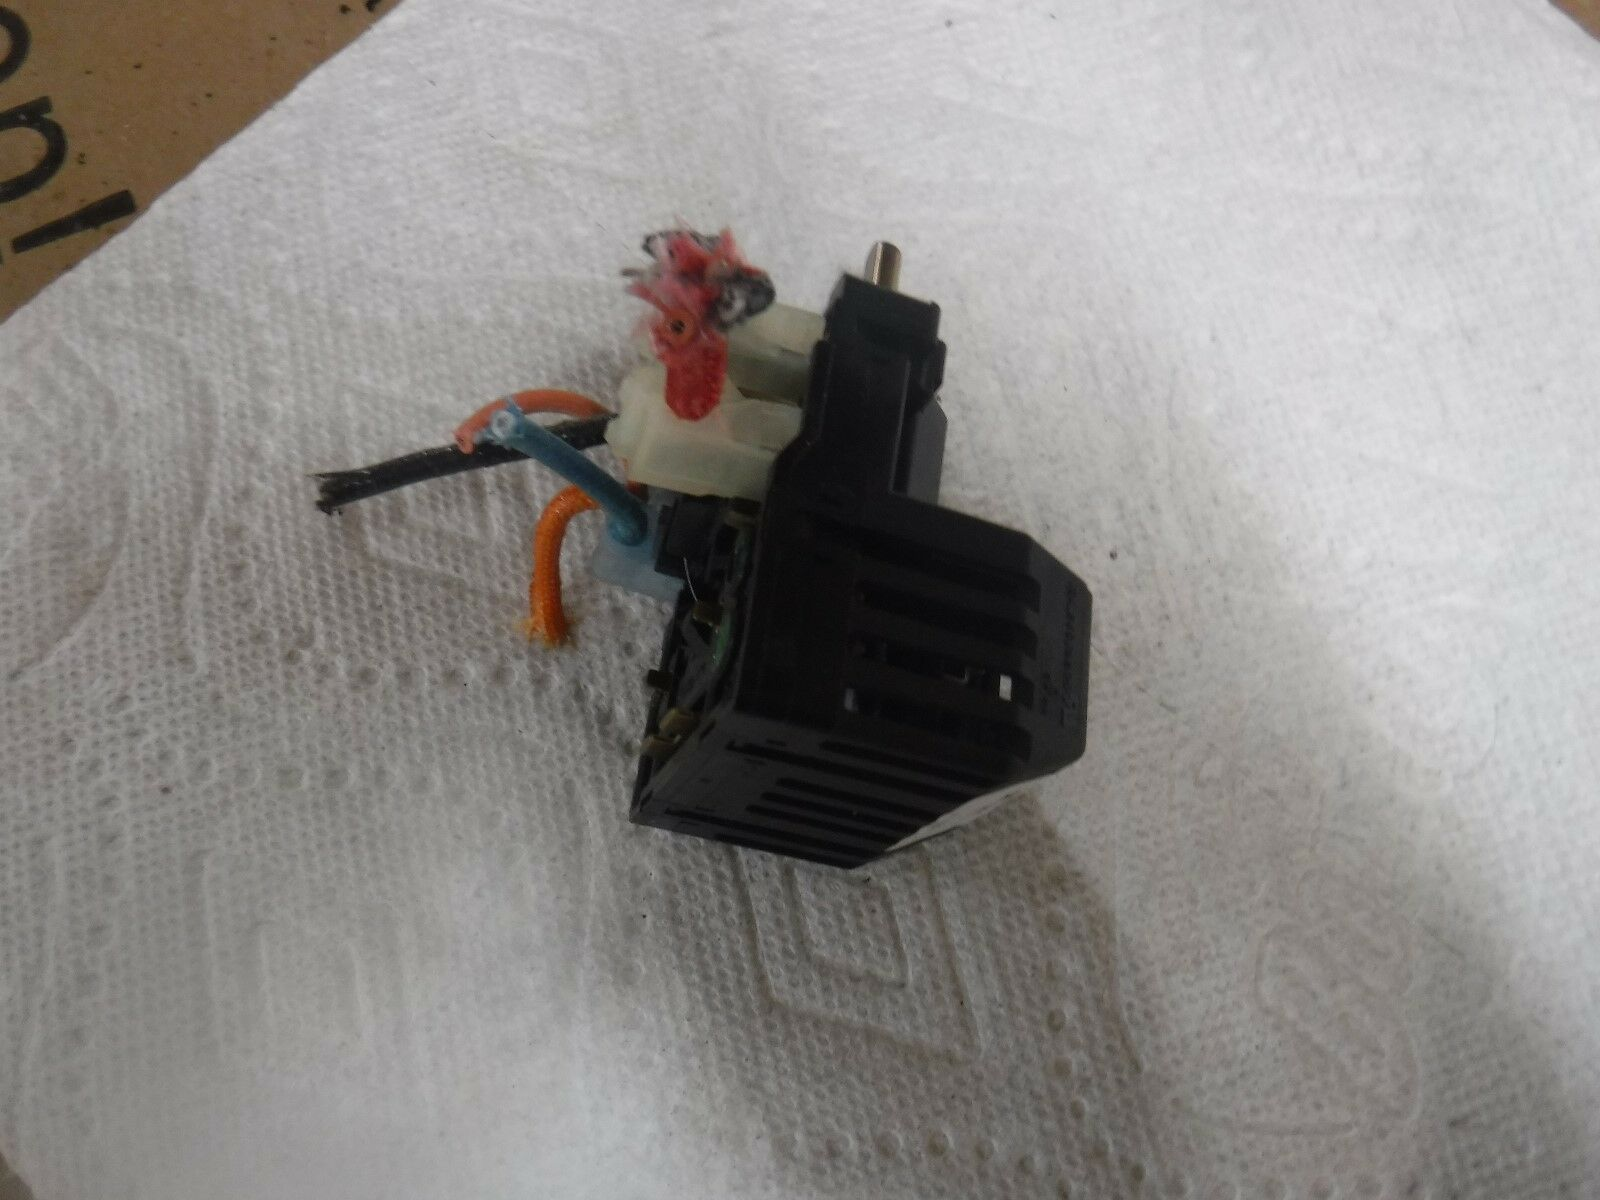 Thermador Dual Burner Switch 14-33-472, 00189808, 1021685